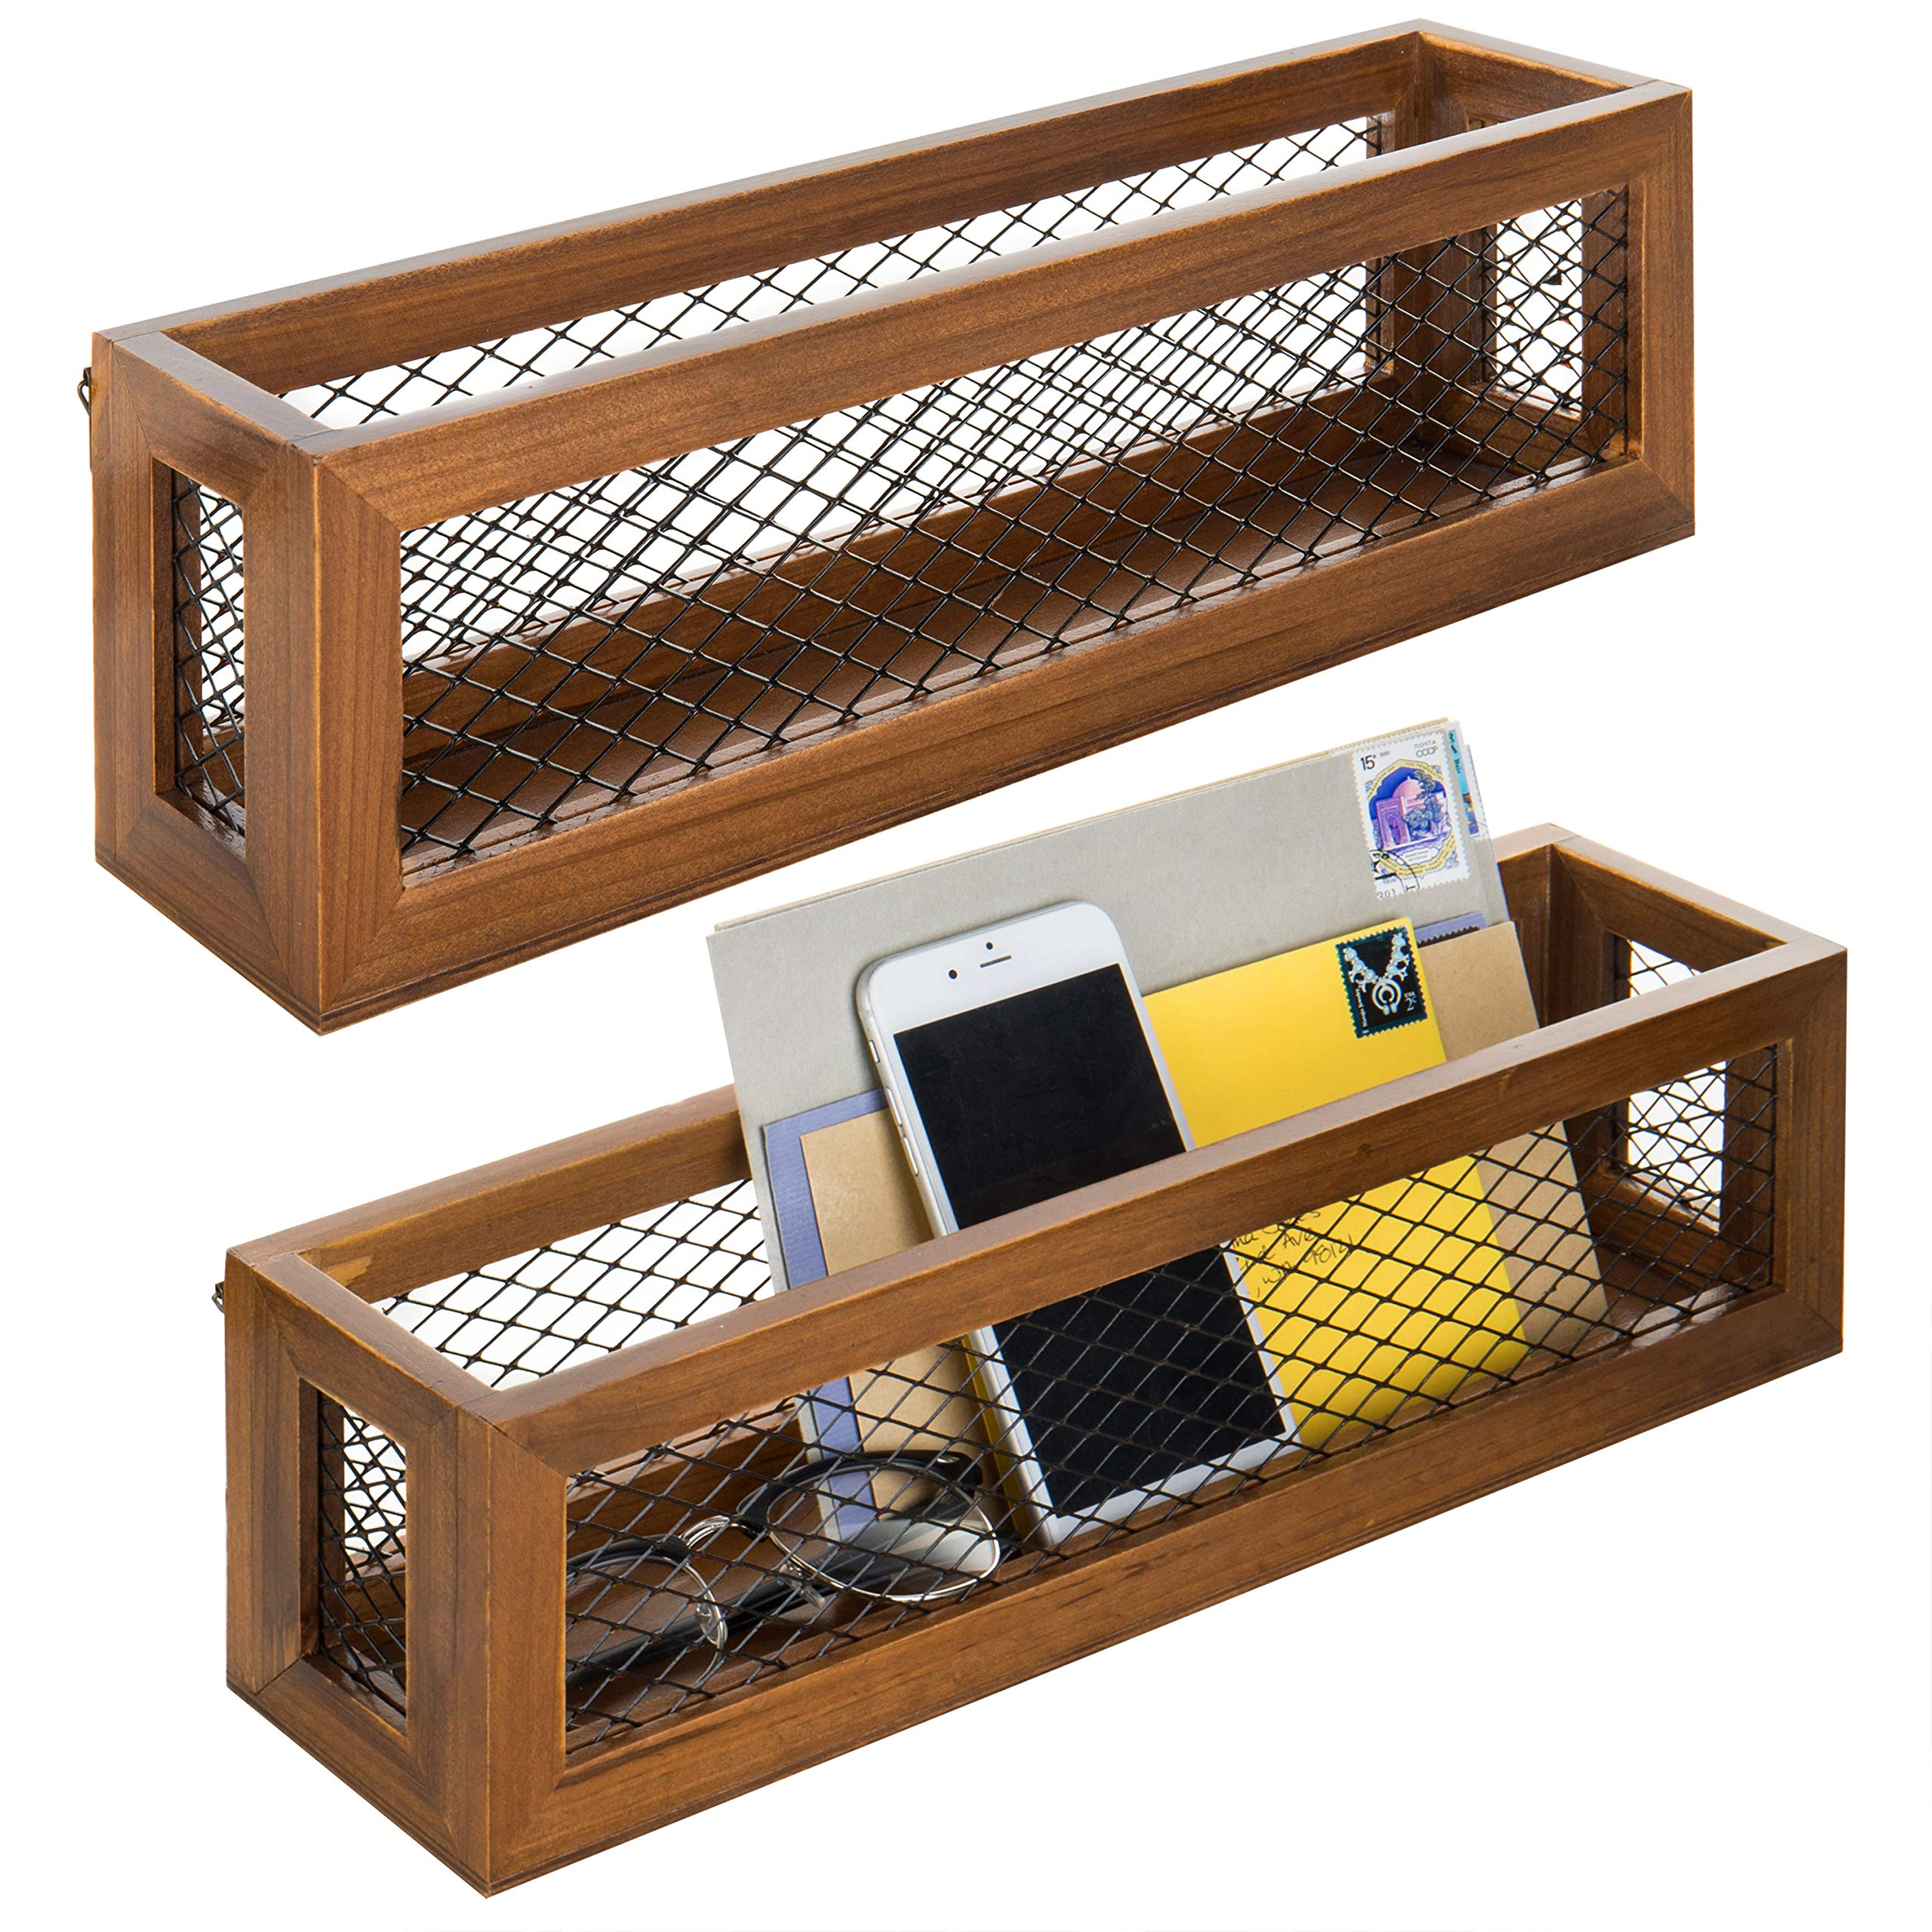 MyGift 16-Inch Burnt Wood & Chicken Wire Floating Box Shelves, Set of 2